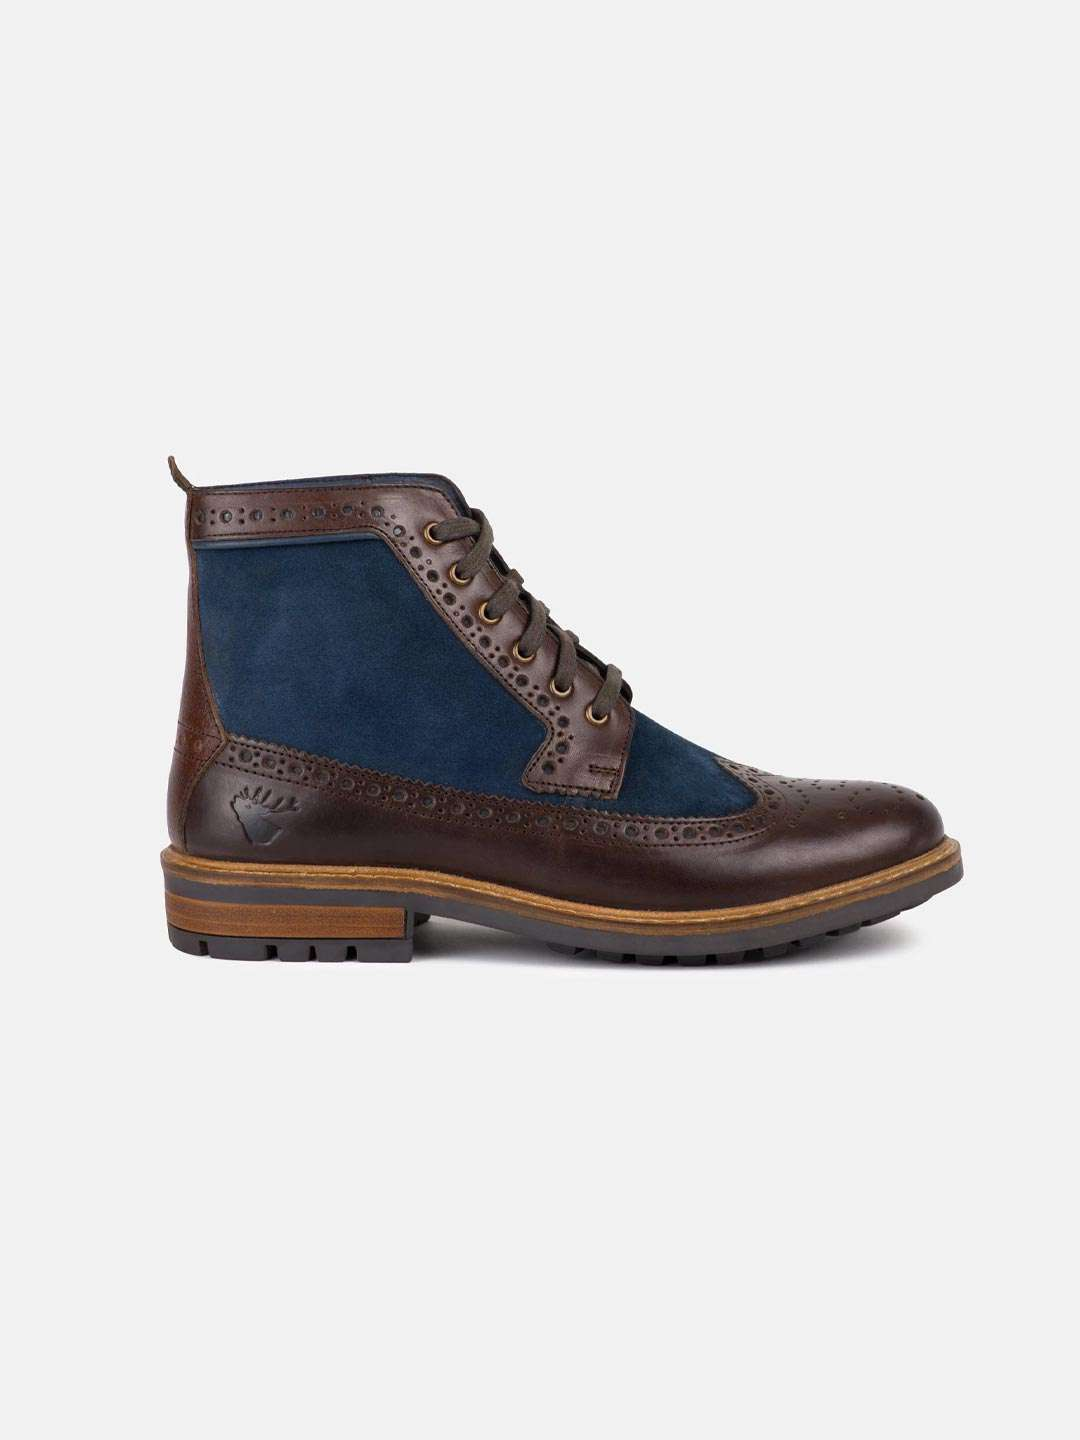 GOODWIN SMITH Marshall Leather Brogue Boot - Revolver Menswear Bawtry